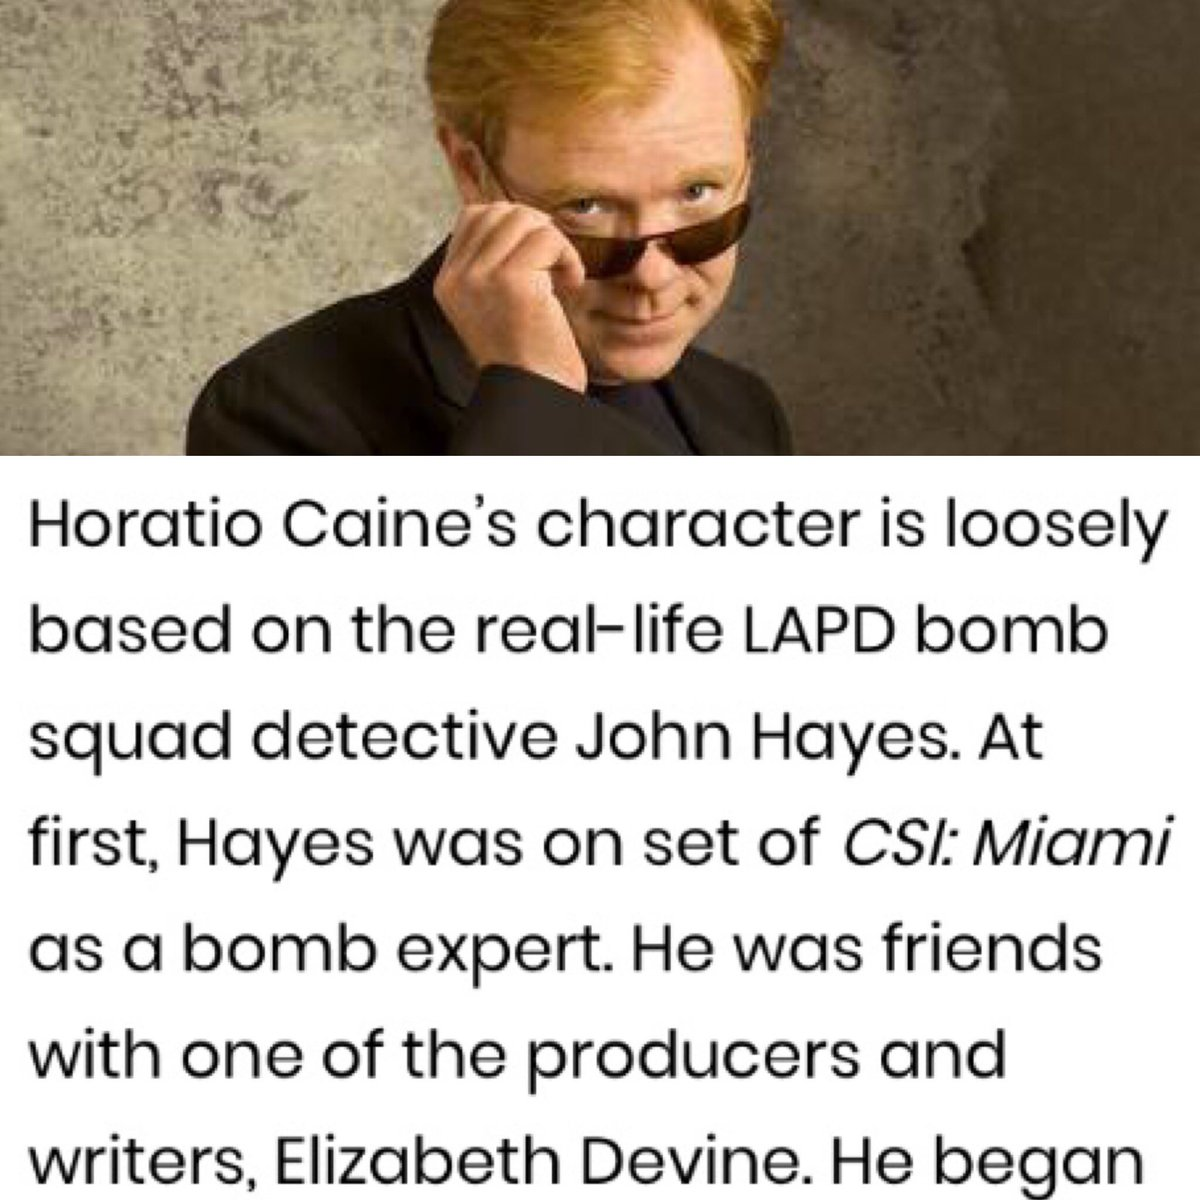 Some #FridayFunFacts @davidcaruso1 played  #JOHNKelly & #MichaelHAYES AND #HoratioCaine which character is based on John Hayes... #coincedence?? 😉👍